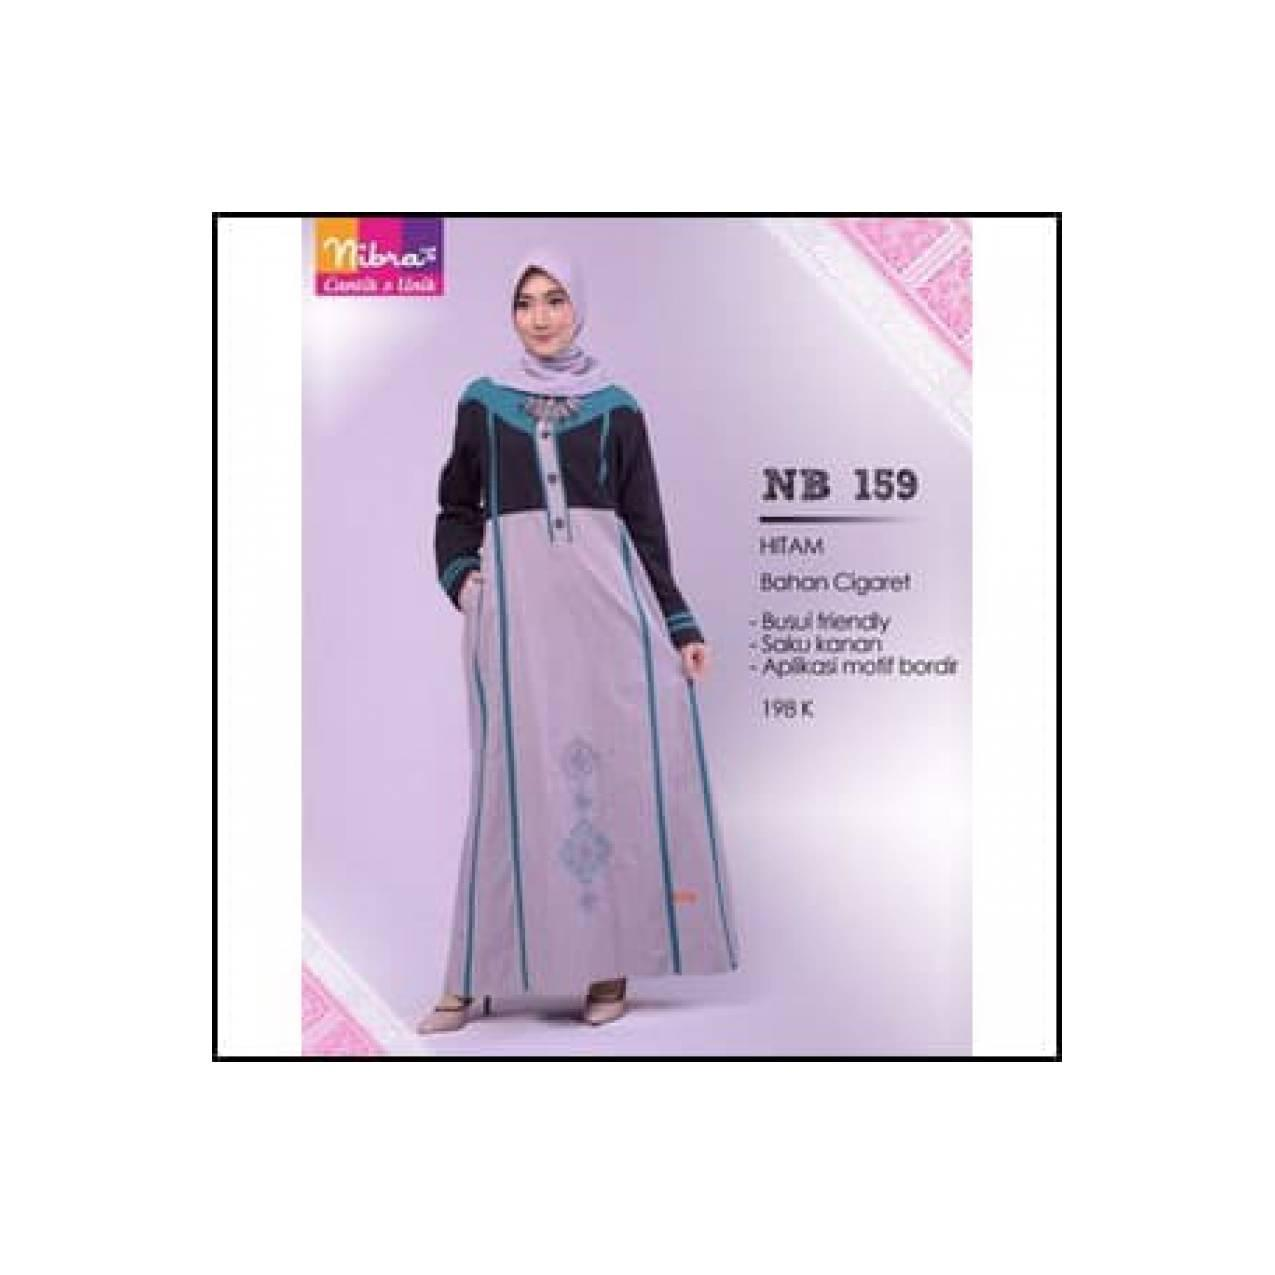 Best Seller Gamis Cigaret Aplikasi Motif Bordir NB 159